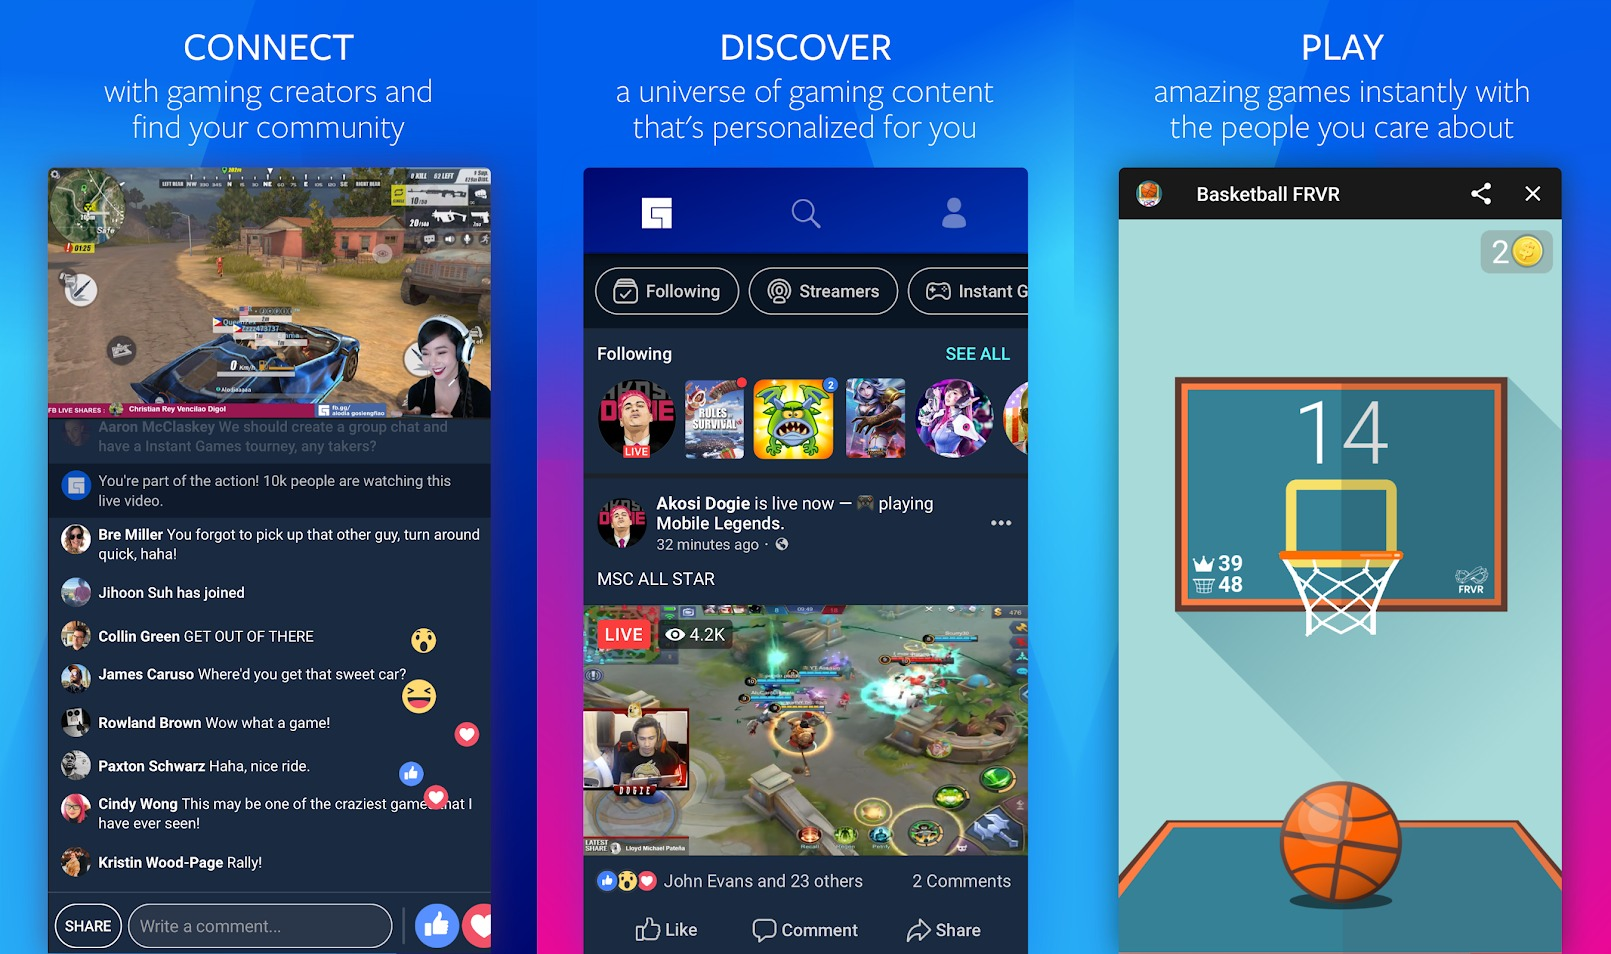 Update: APK Download] Facebook's gaming hub now has an